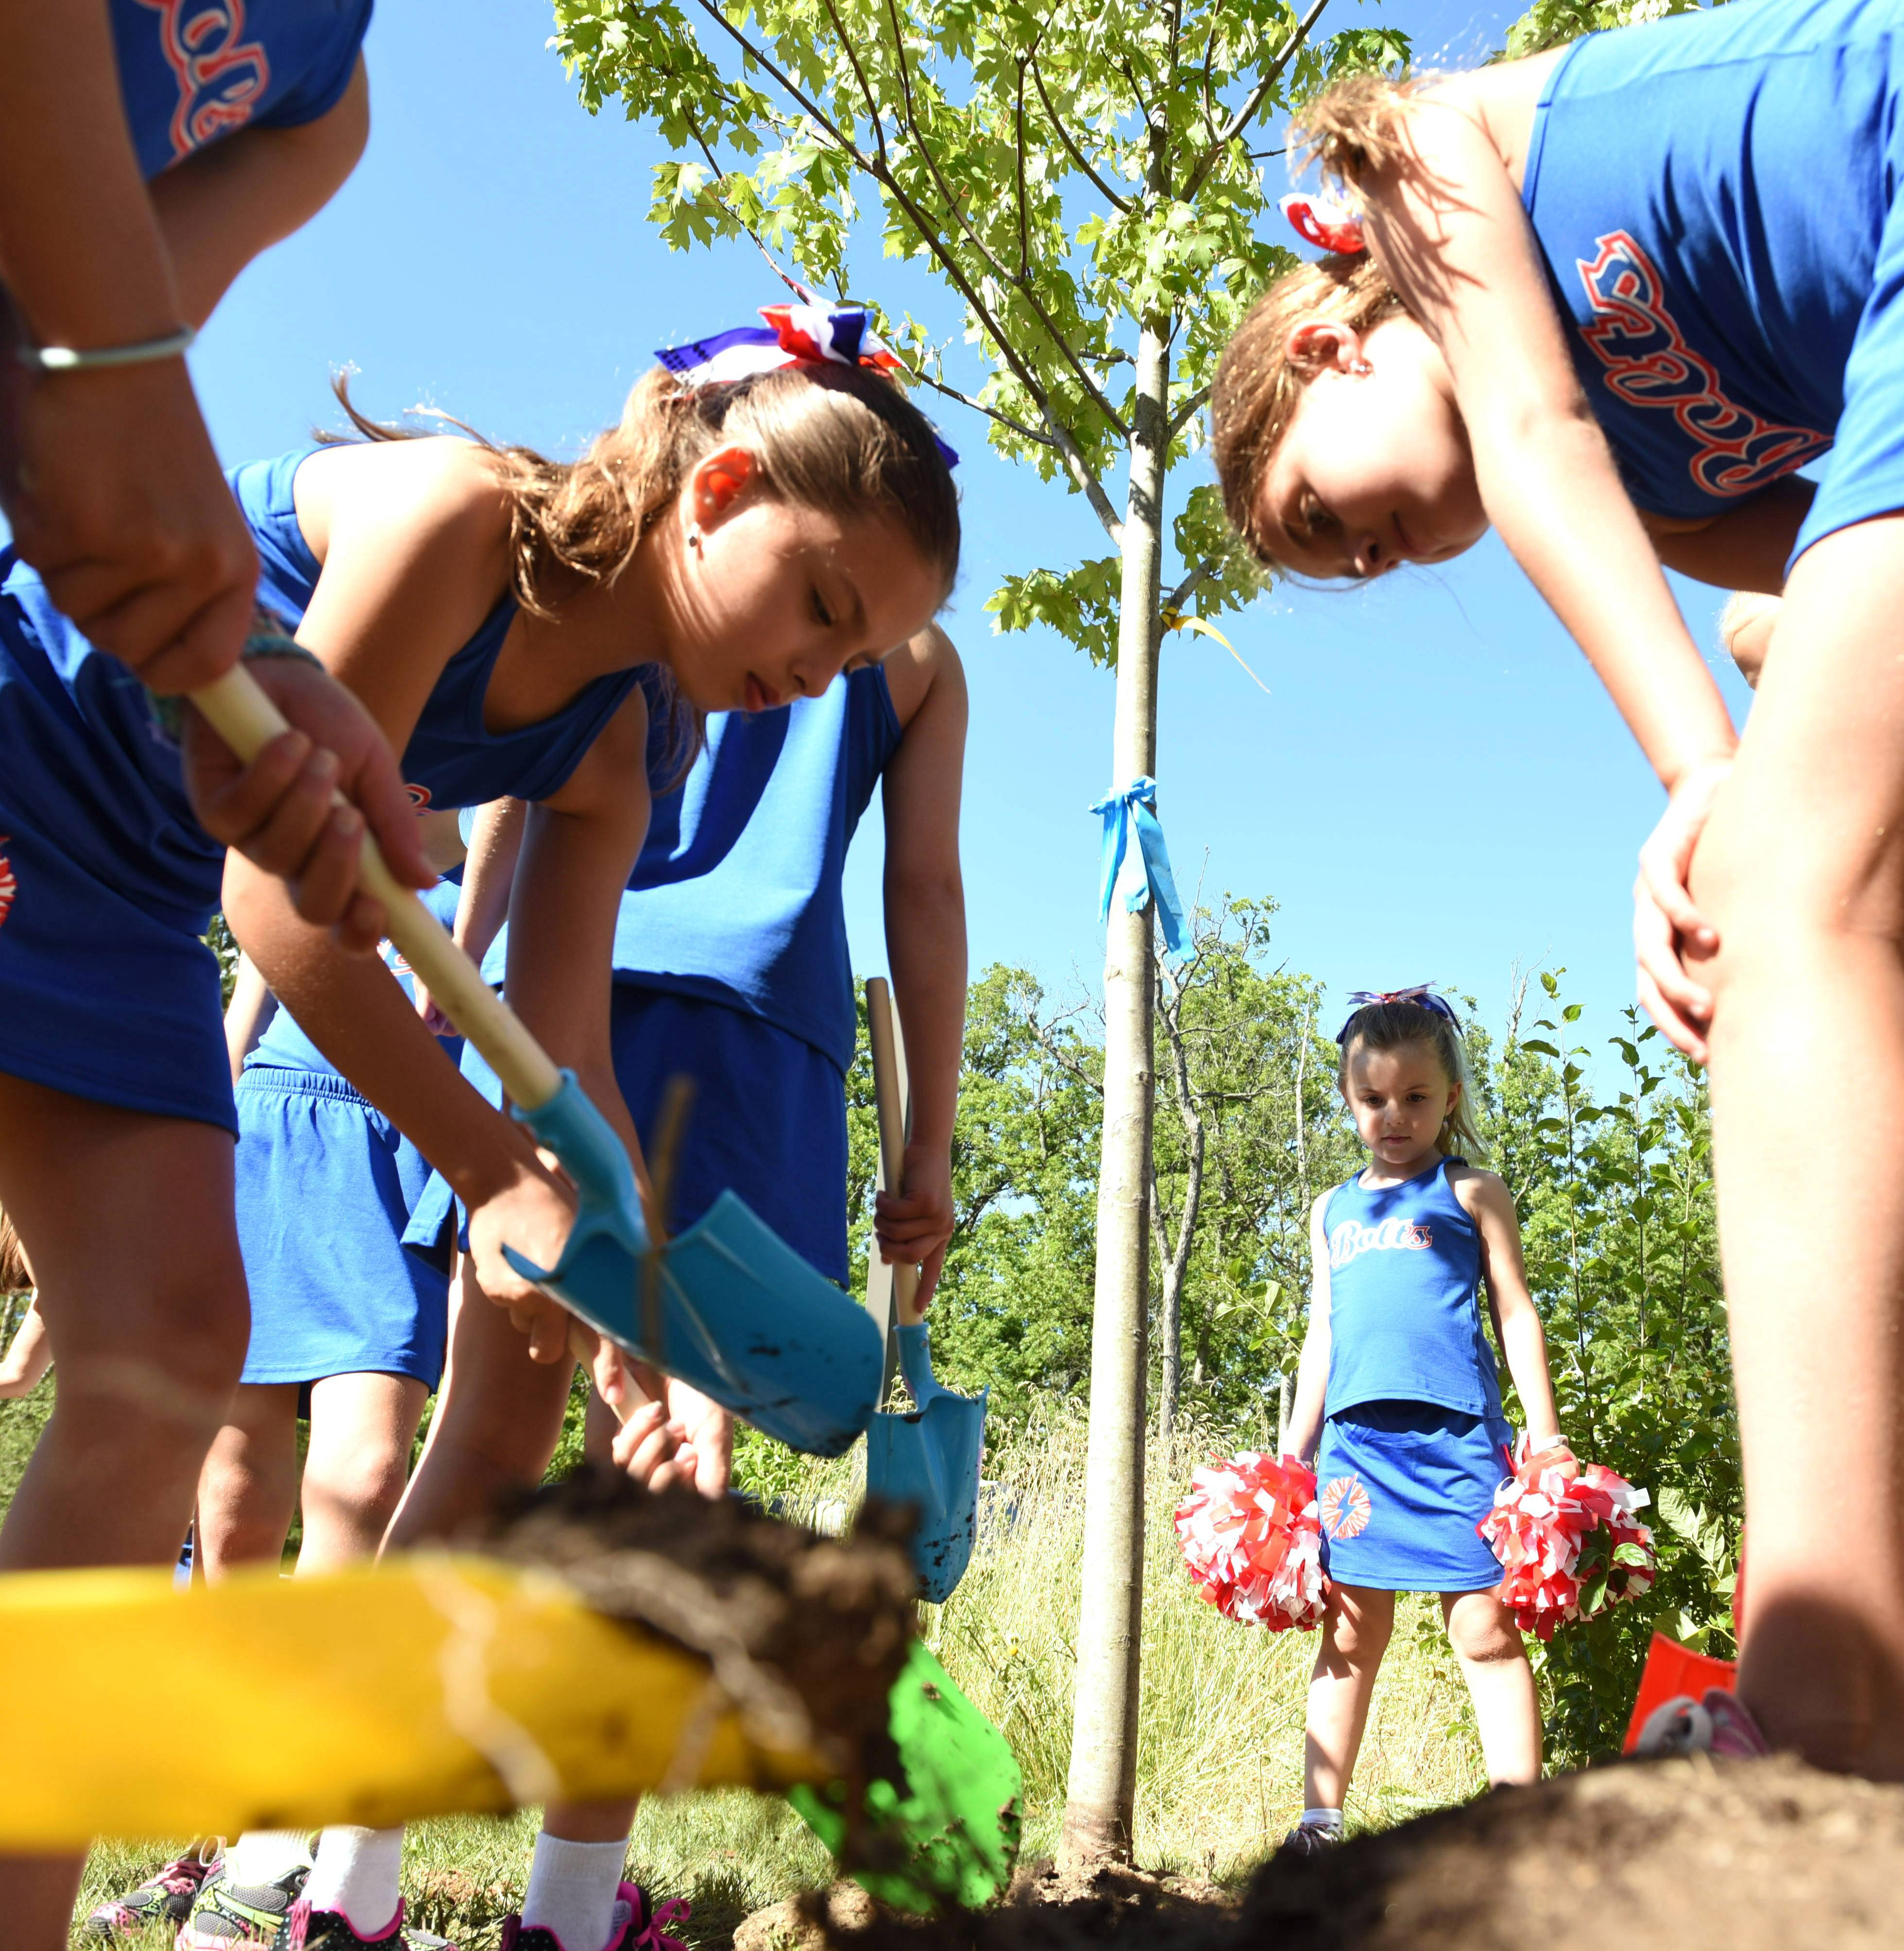 Members of the Lincolnshire Bolts pom squad shovel soil into the hole for a newly-planted maple tree on Monday at the Lutheran Church of the Holy Spirit in Lincolnshire. The group donated a maple tree to the church as a thank you for allowing them to practice there.